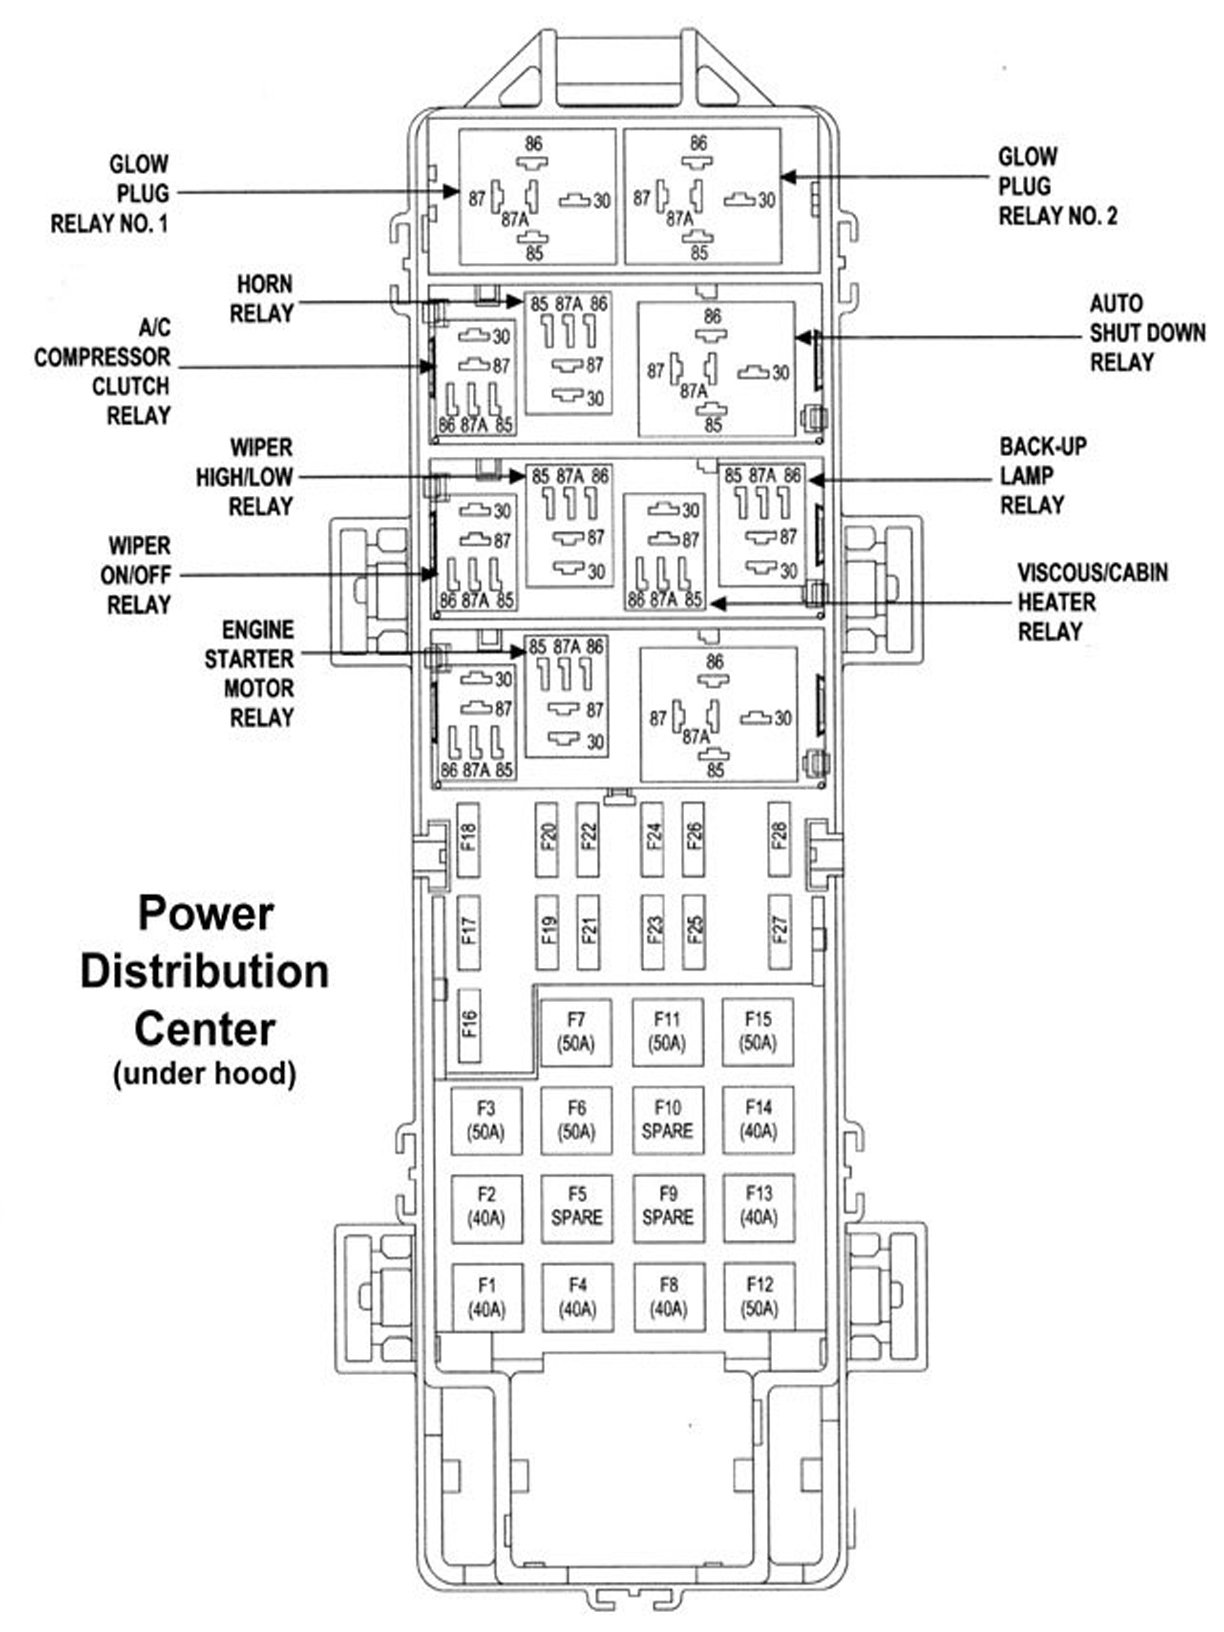 AAAAAAAAug 28 Fuse Box 04 91415 fuse box 96 jeep cherokee wiring diagram simonand 1998 jeep cherokee fuse box diagram at edmiracle.co